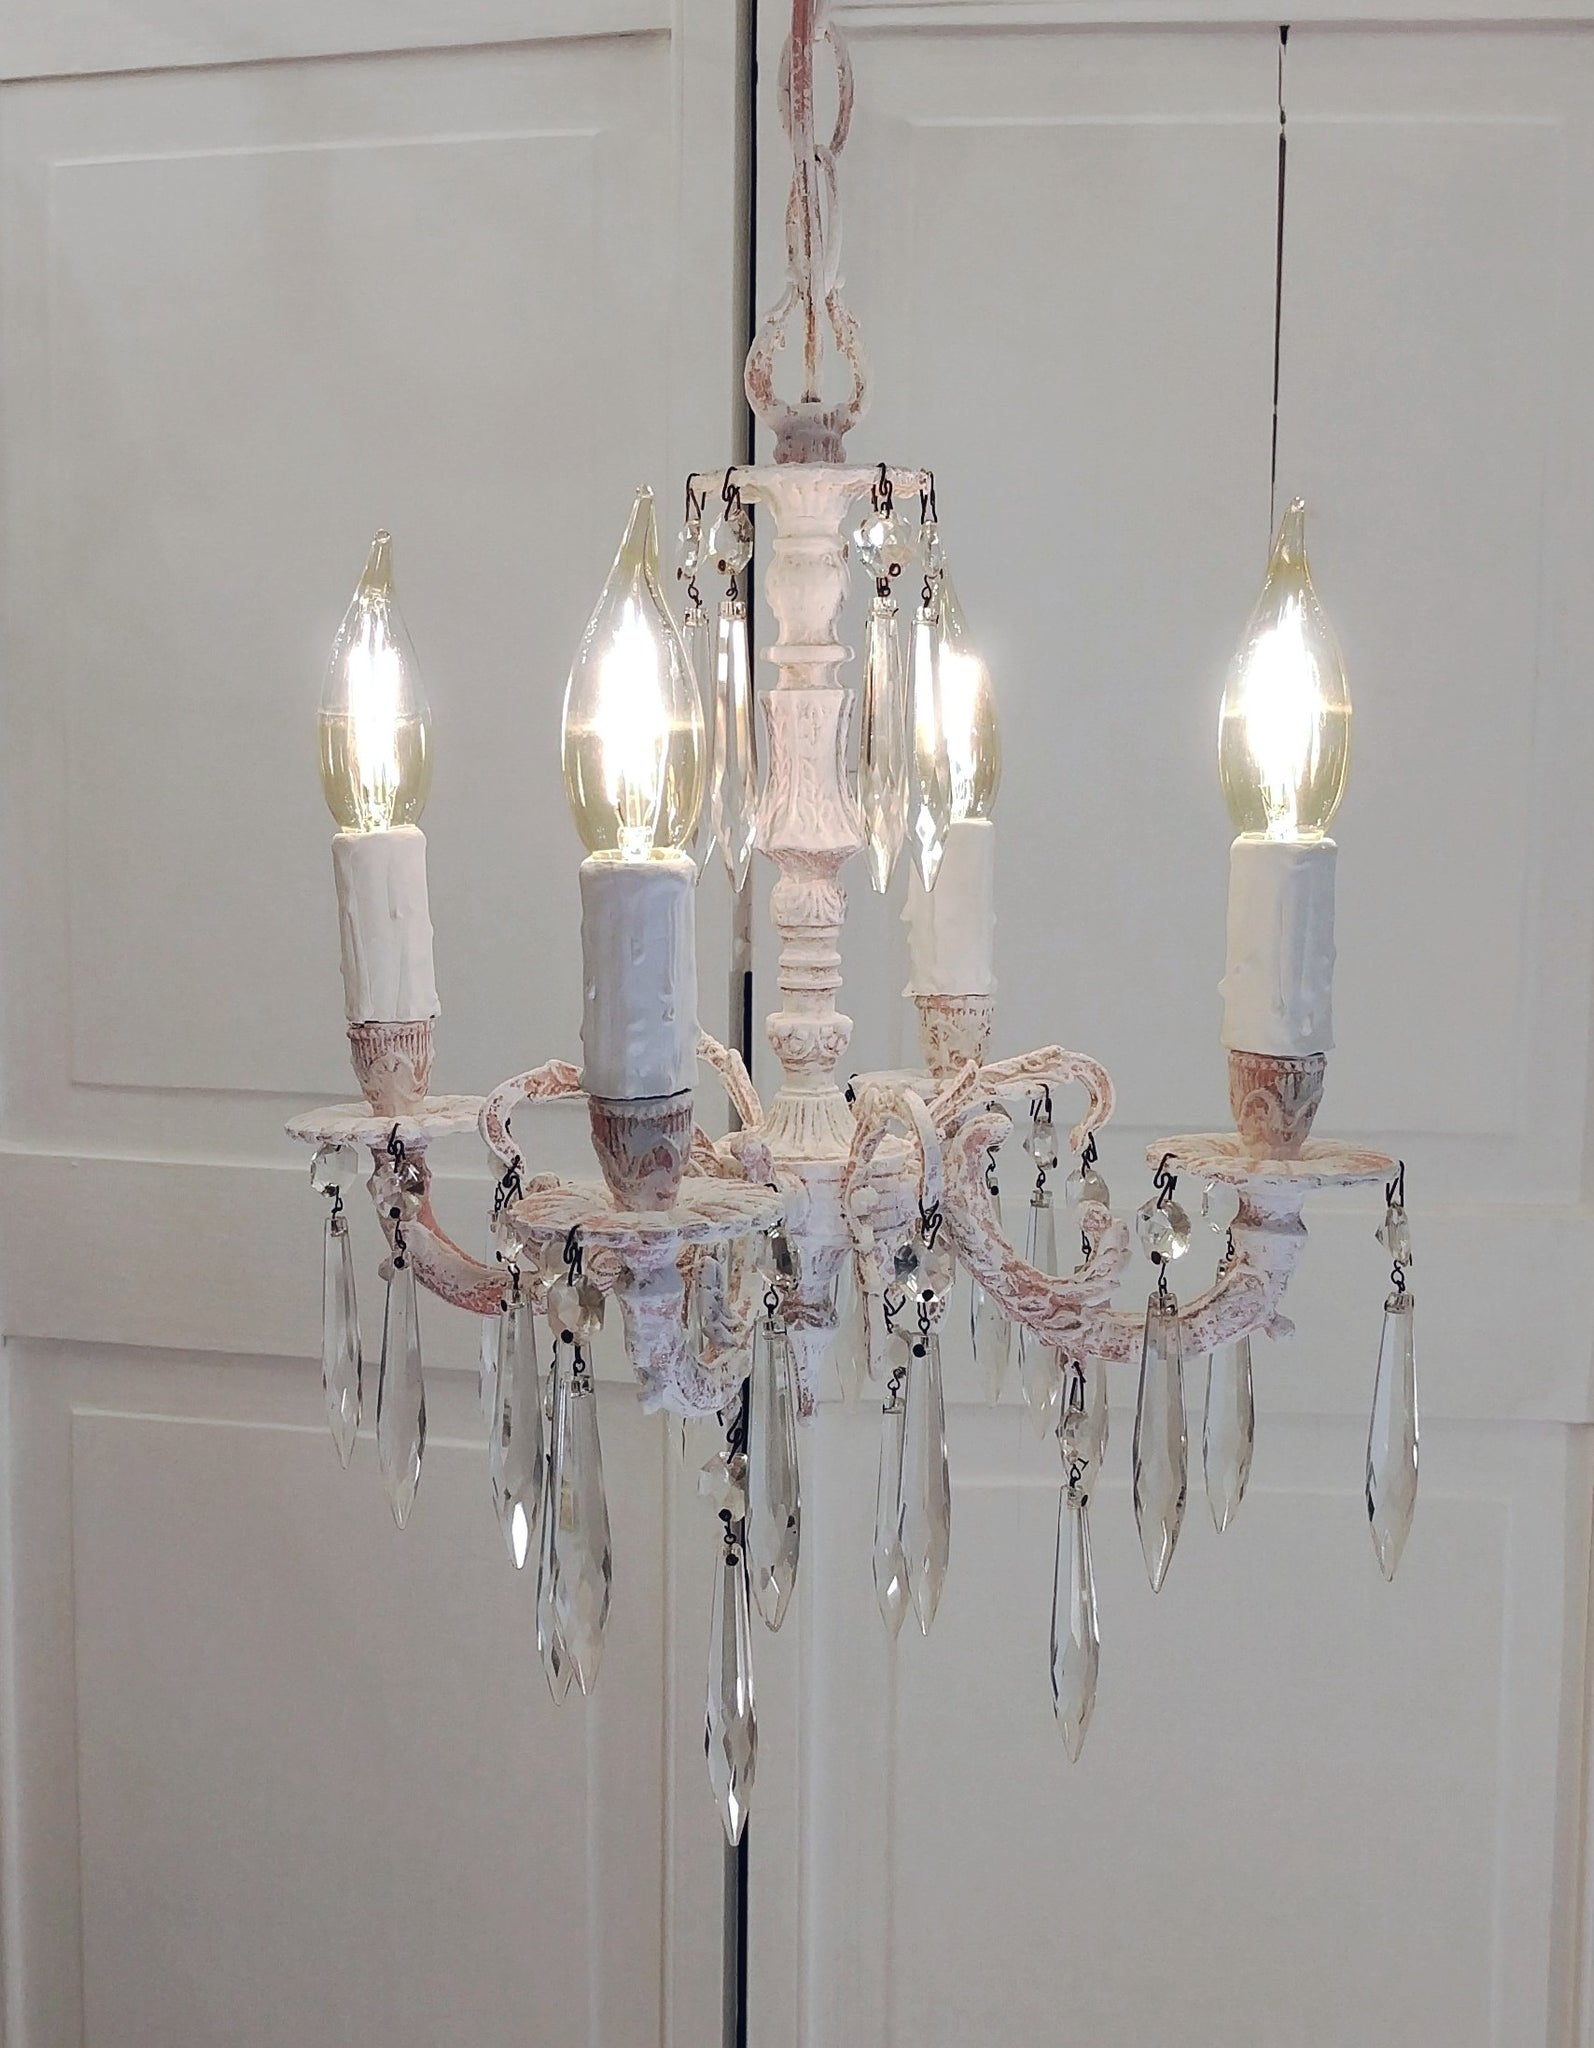 island light maison product chandelier antique kuo country kathy home french chandeliers detail white